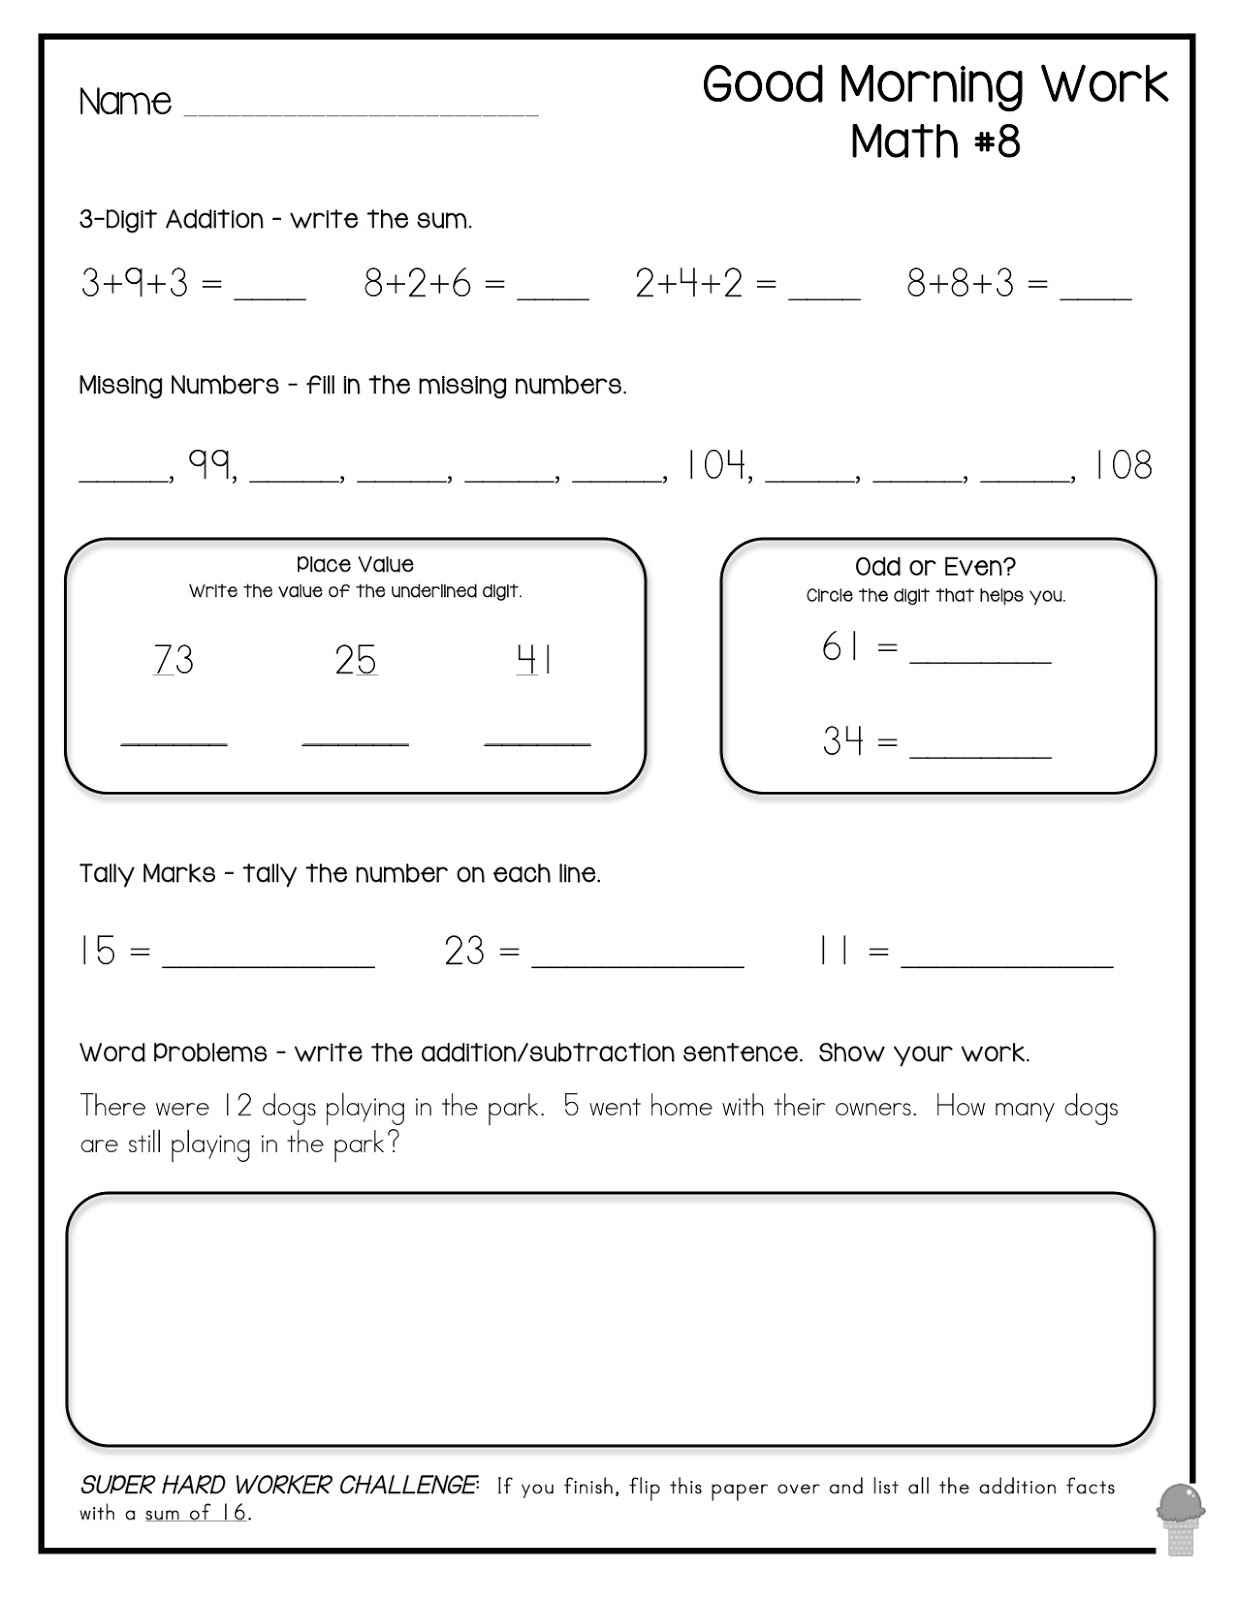 Low Math Worksheet